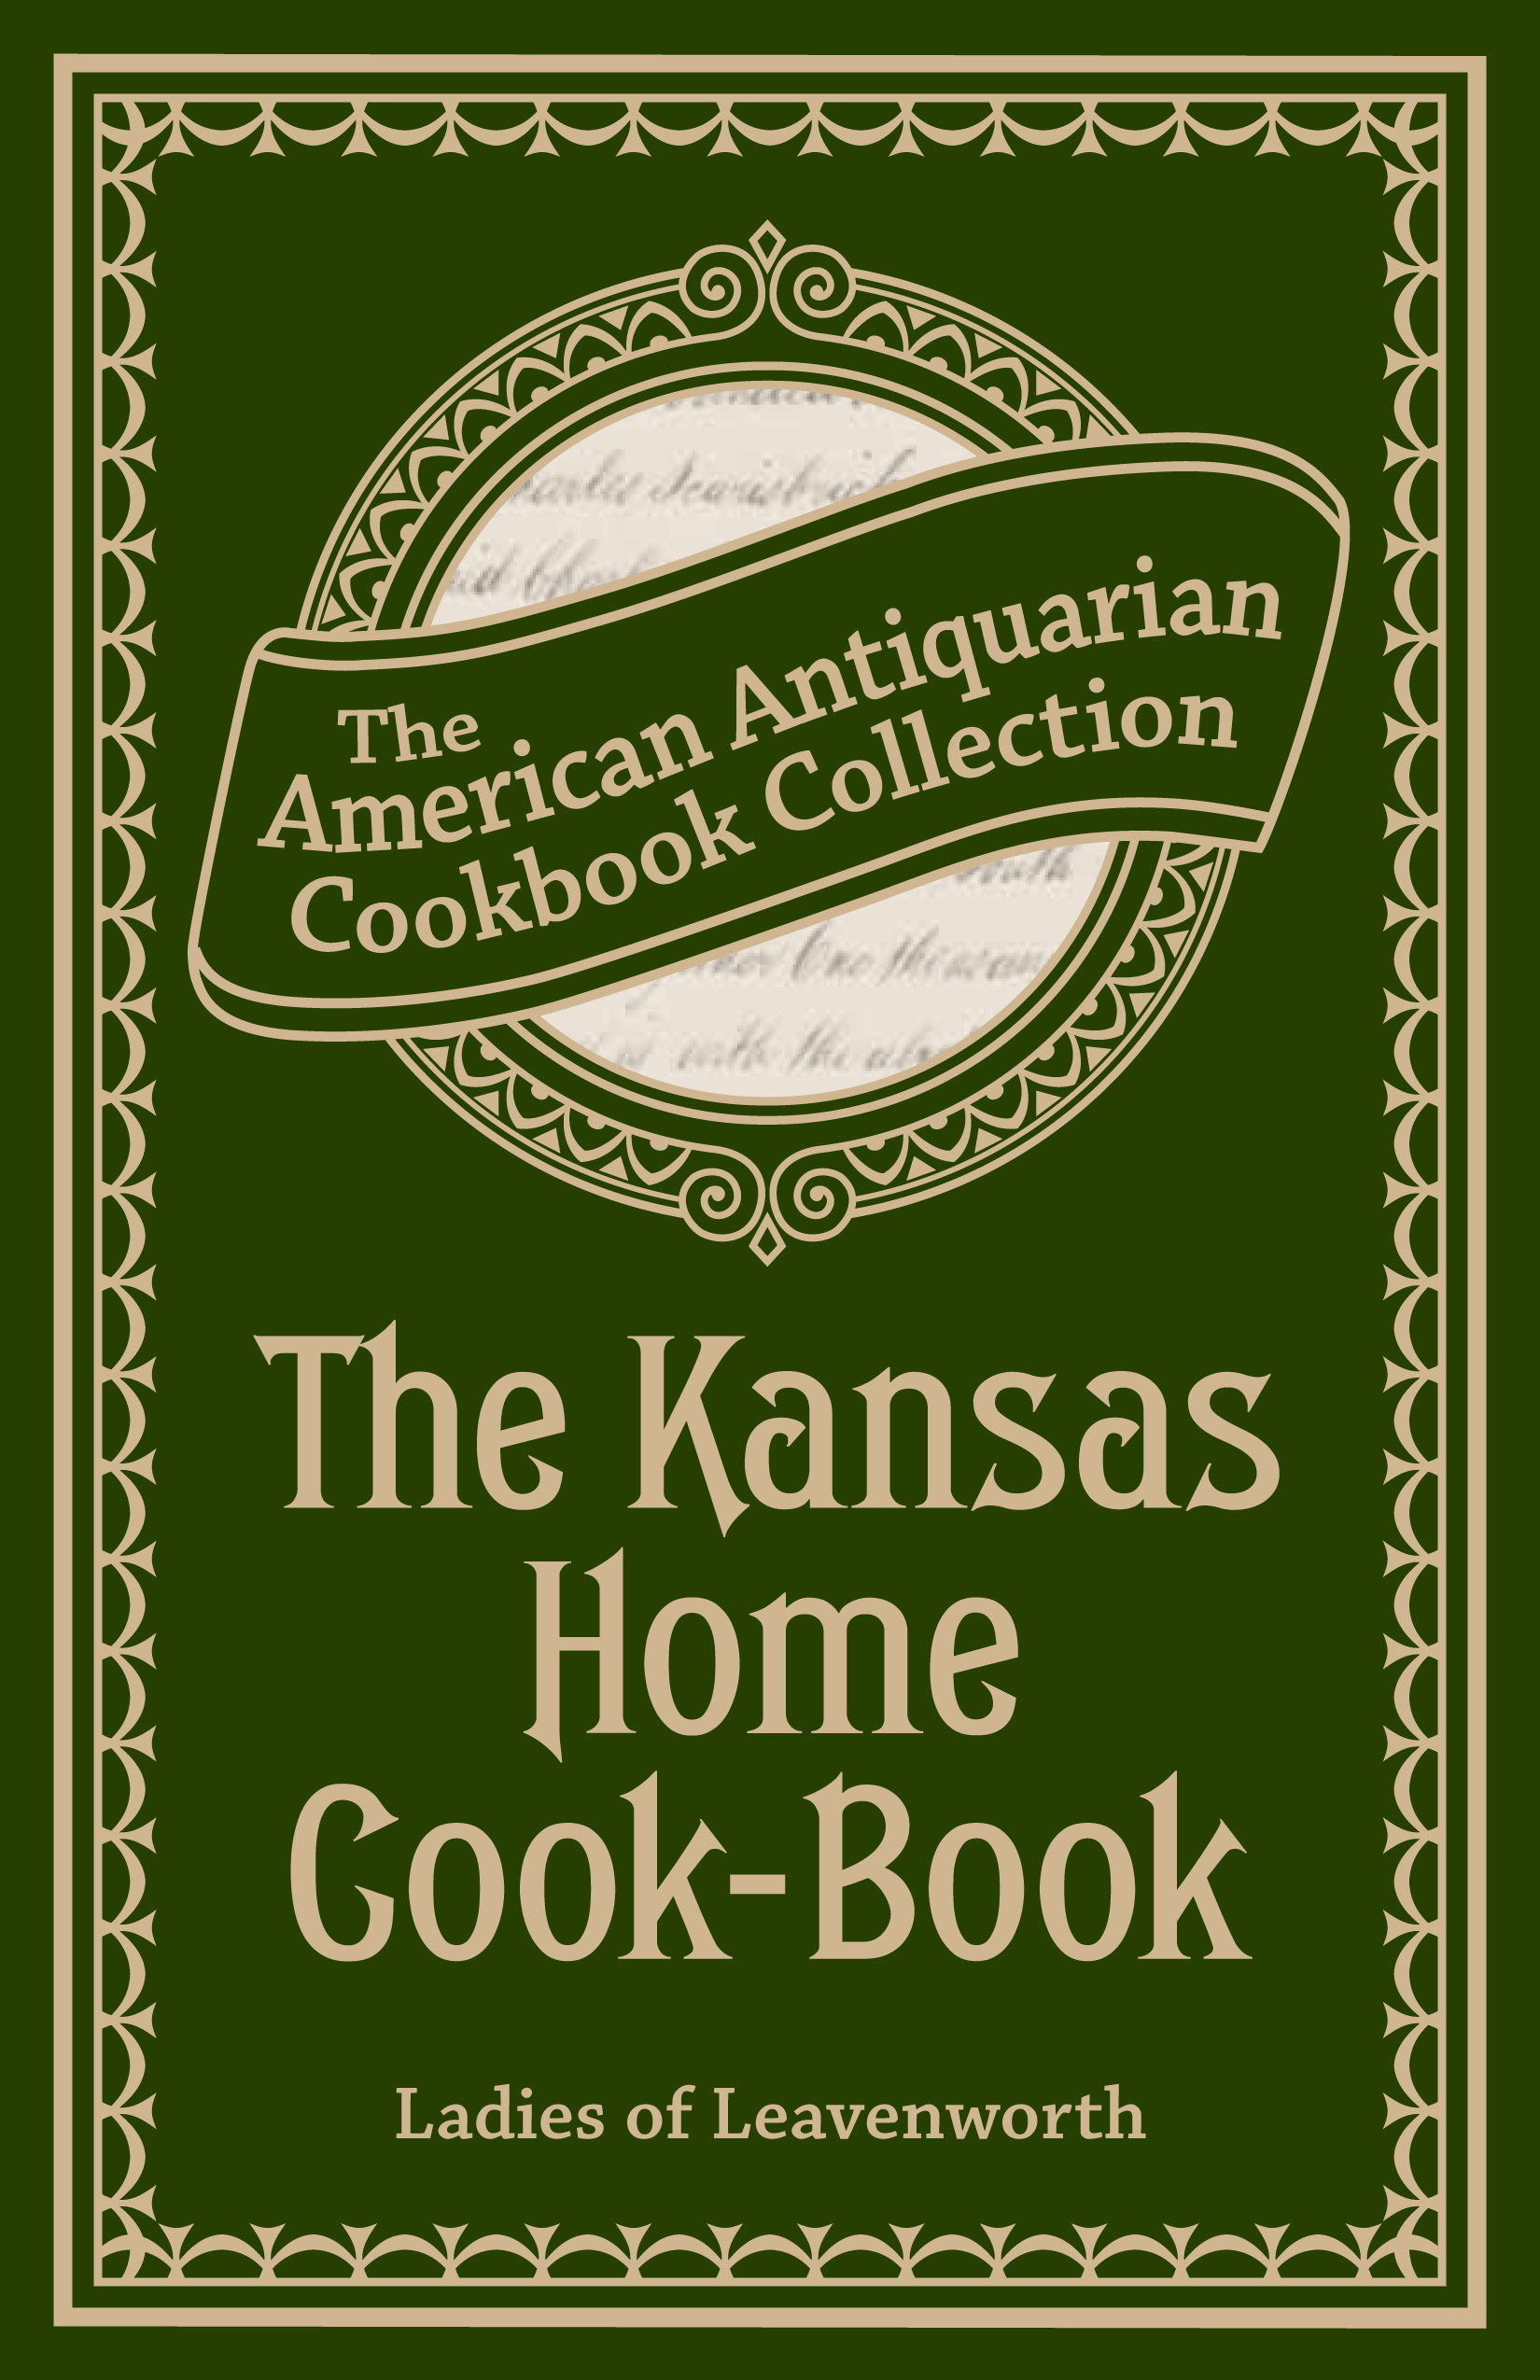 The Kansas Home Cook-Book